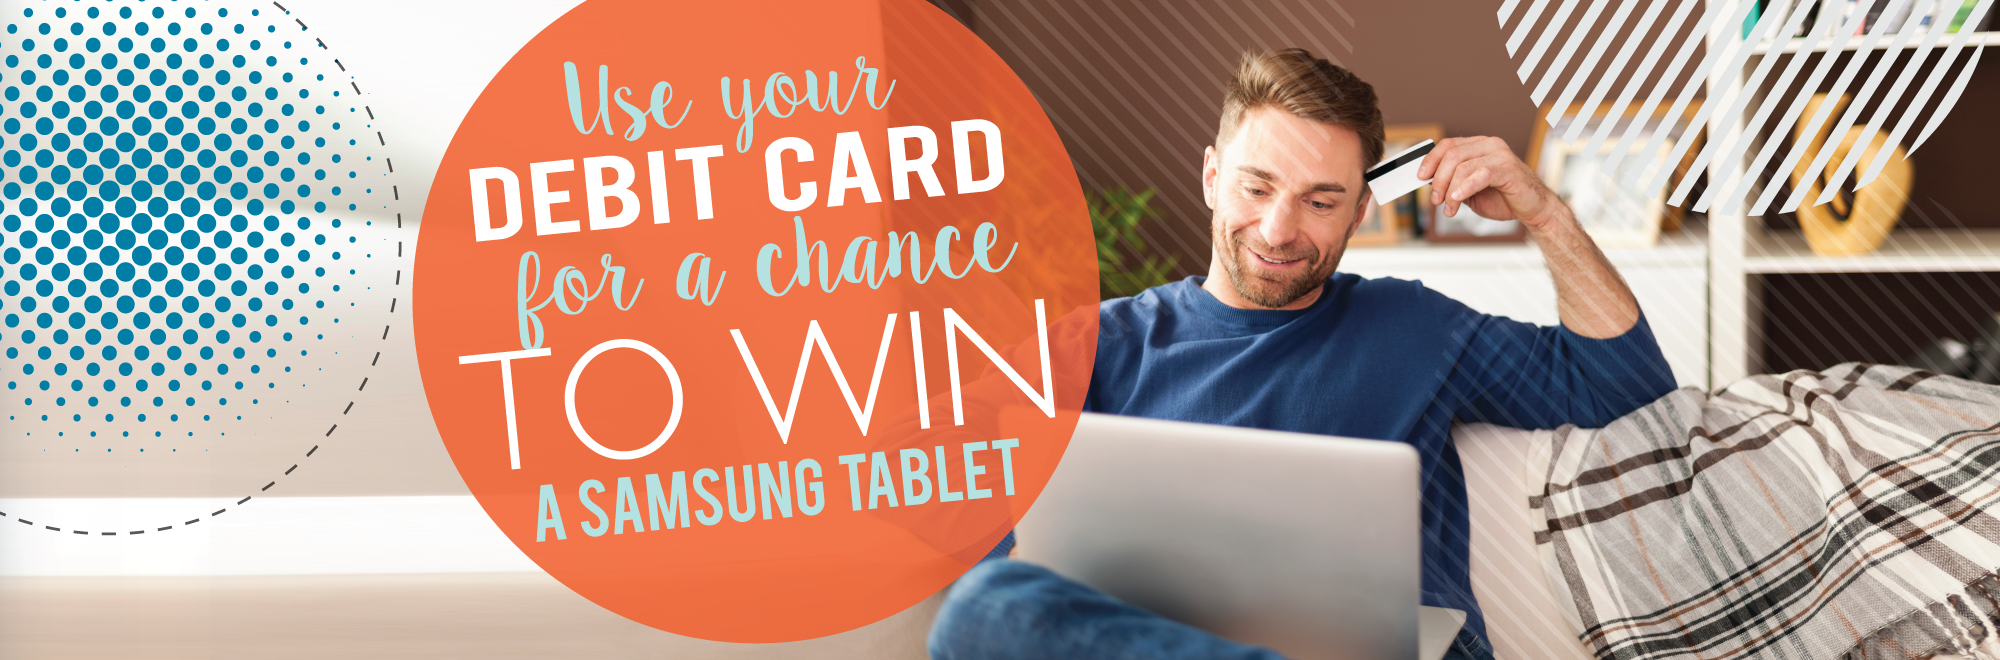 Use your debit card for a chance to win a Samsung Tablet